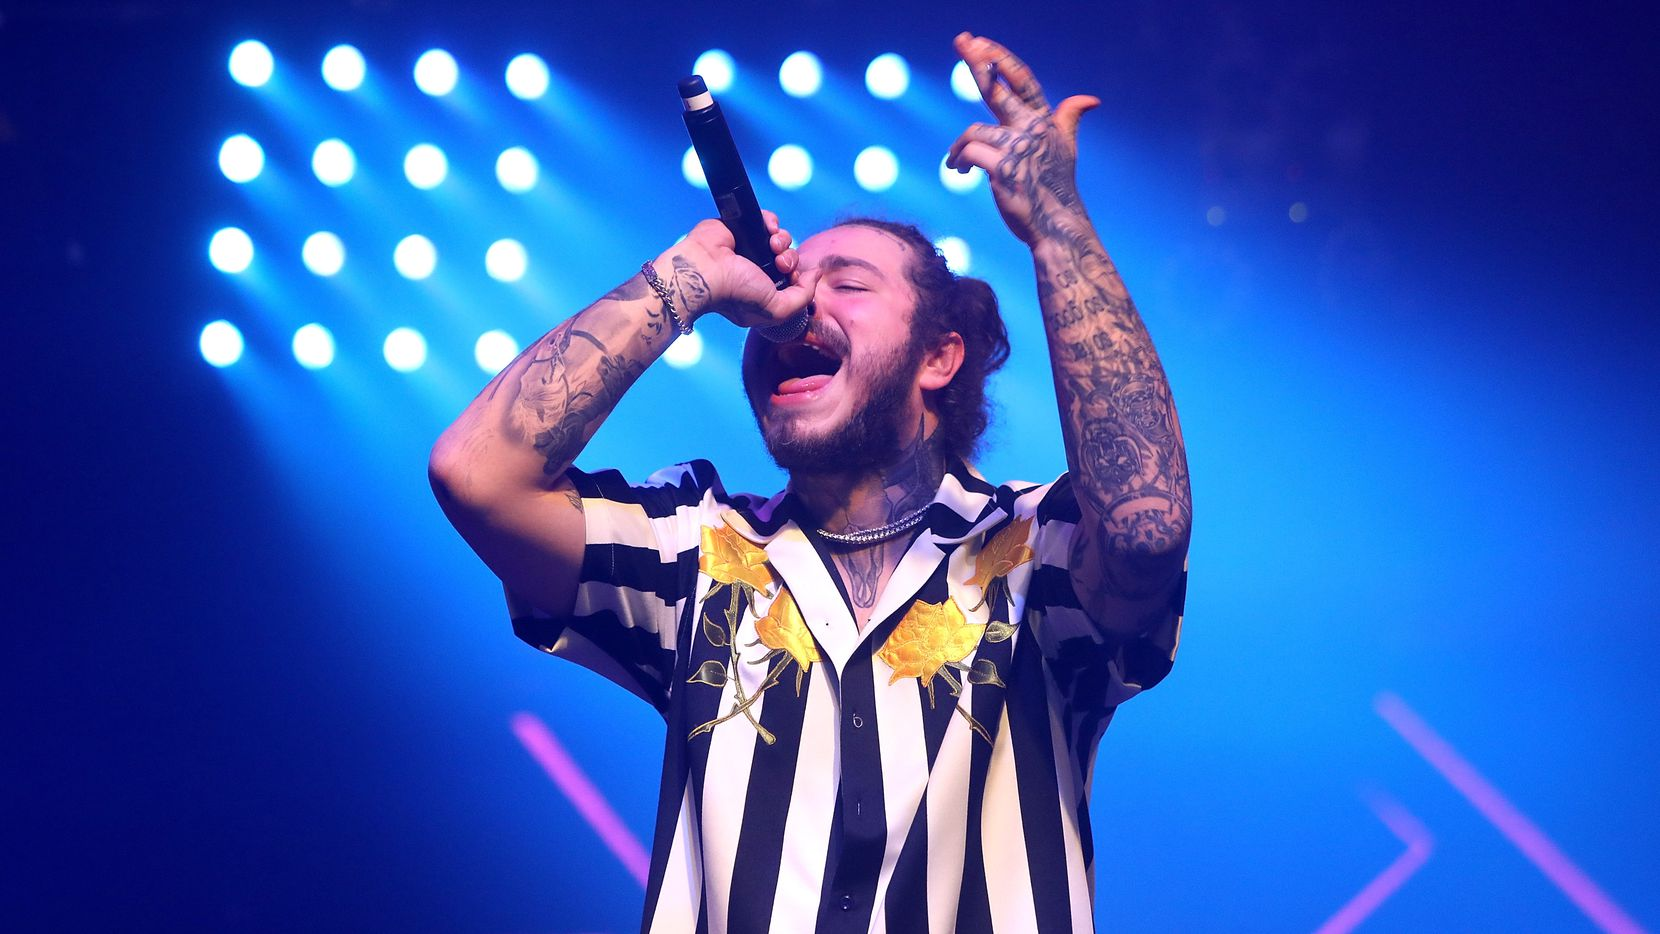 Post Malone performs onstage at the 2018 Billboard Music Awards official afterparty at Hakkasan Nightclub on May 20, 2018 in Las Vegas, Nev.  LAS VEGAS, NV - MAY 20:  Post Malone performs onstage at the 2018 Billboard Music Awards official after party at Hakkasan Nightclub presented by Security Benefit at MGM Grand Hotel & Casino on May 20, 2018 in Las Vegas, Nevada.  (Photo by Roger Kisby/Getty Images for Dick Clark Productions) ORG XMIT: 775164601